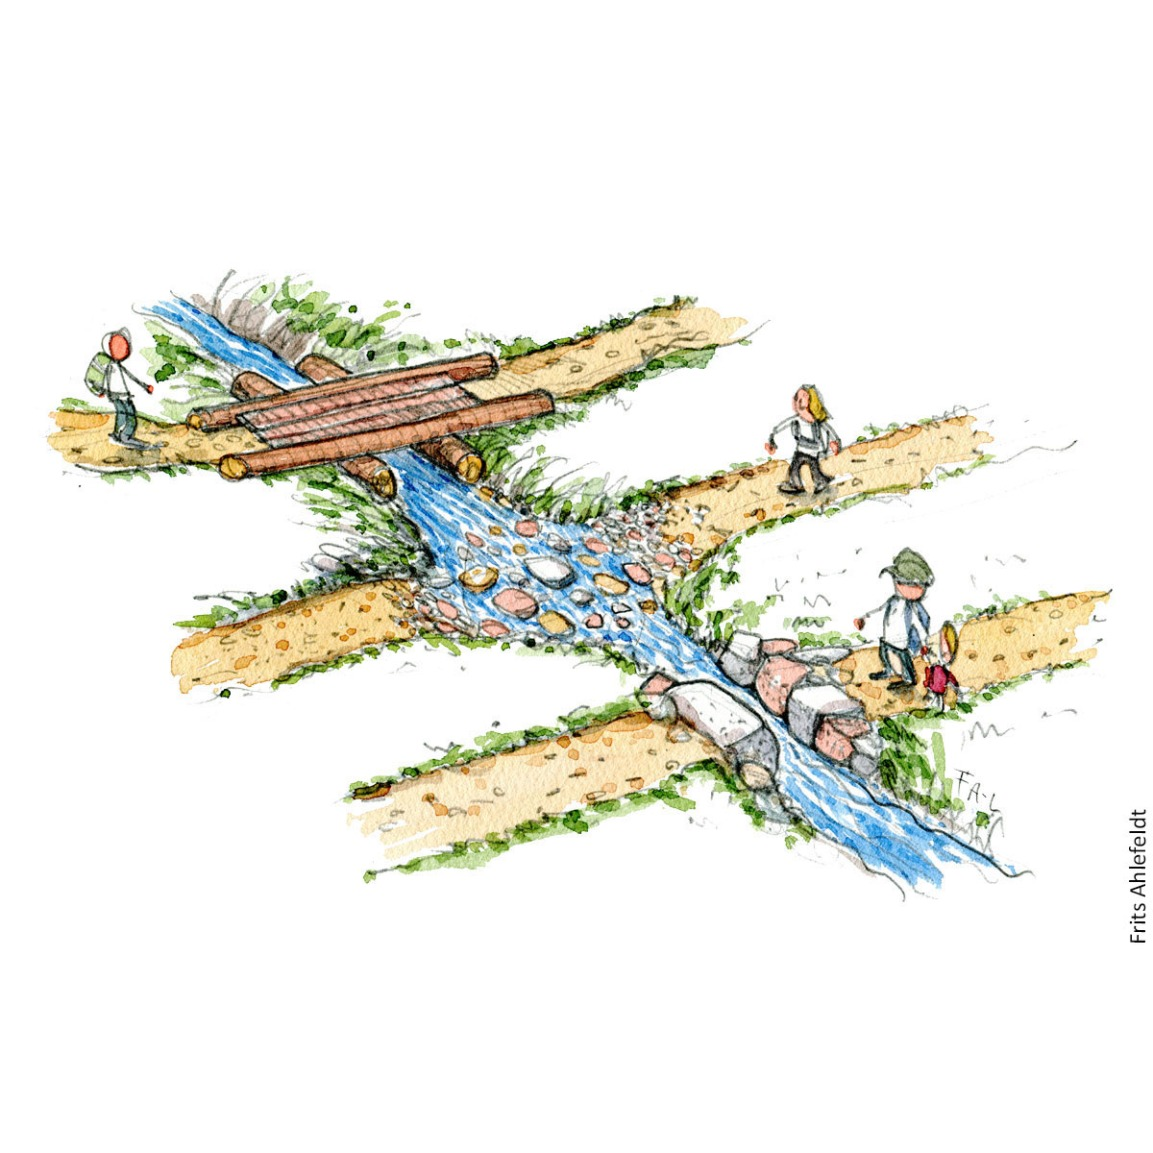 Stream with three different crossings: Drawing by Frits Ahlefeldt. Hiking.org